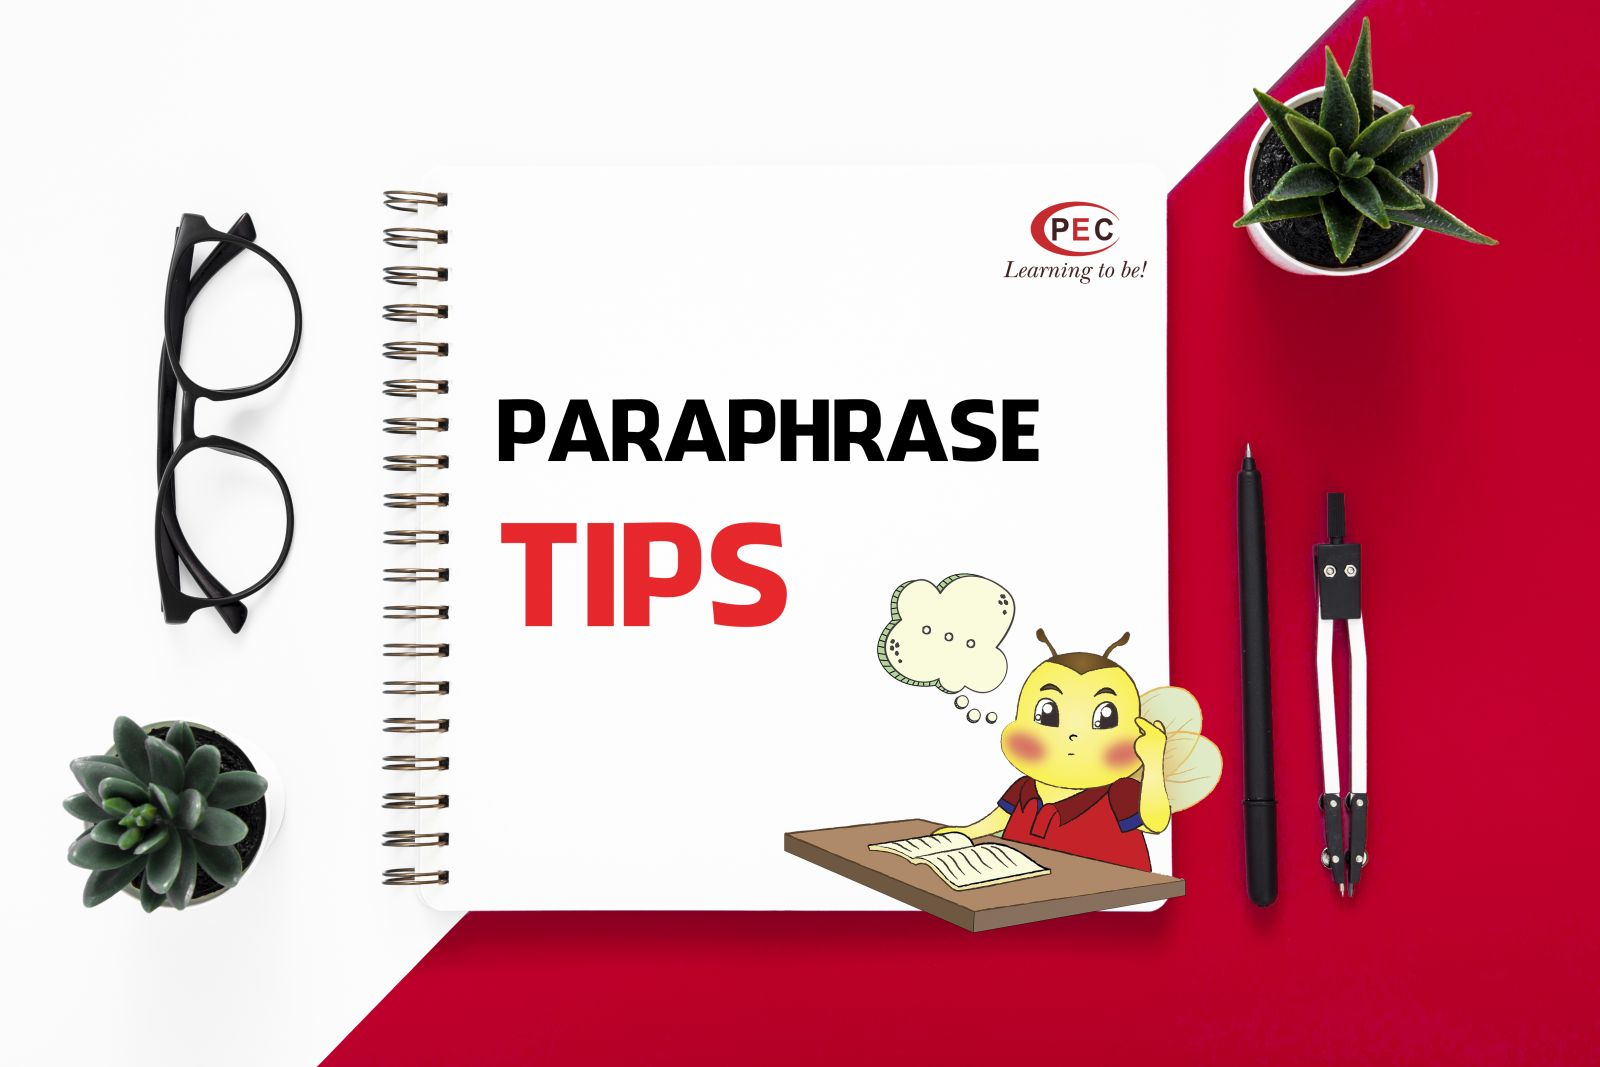 Paraphrase tips for IELTS